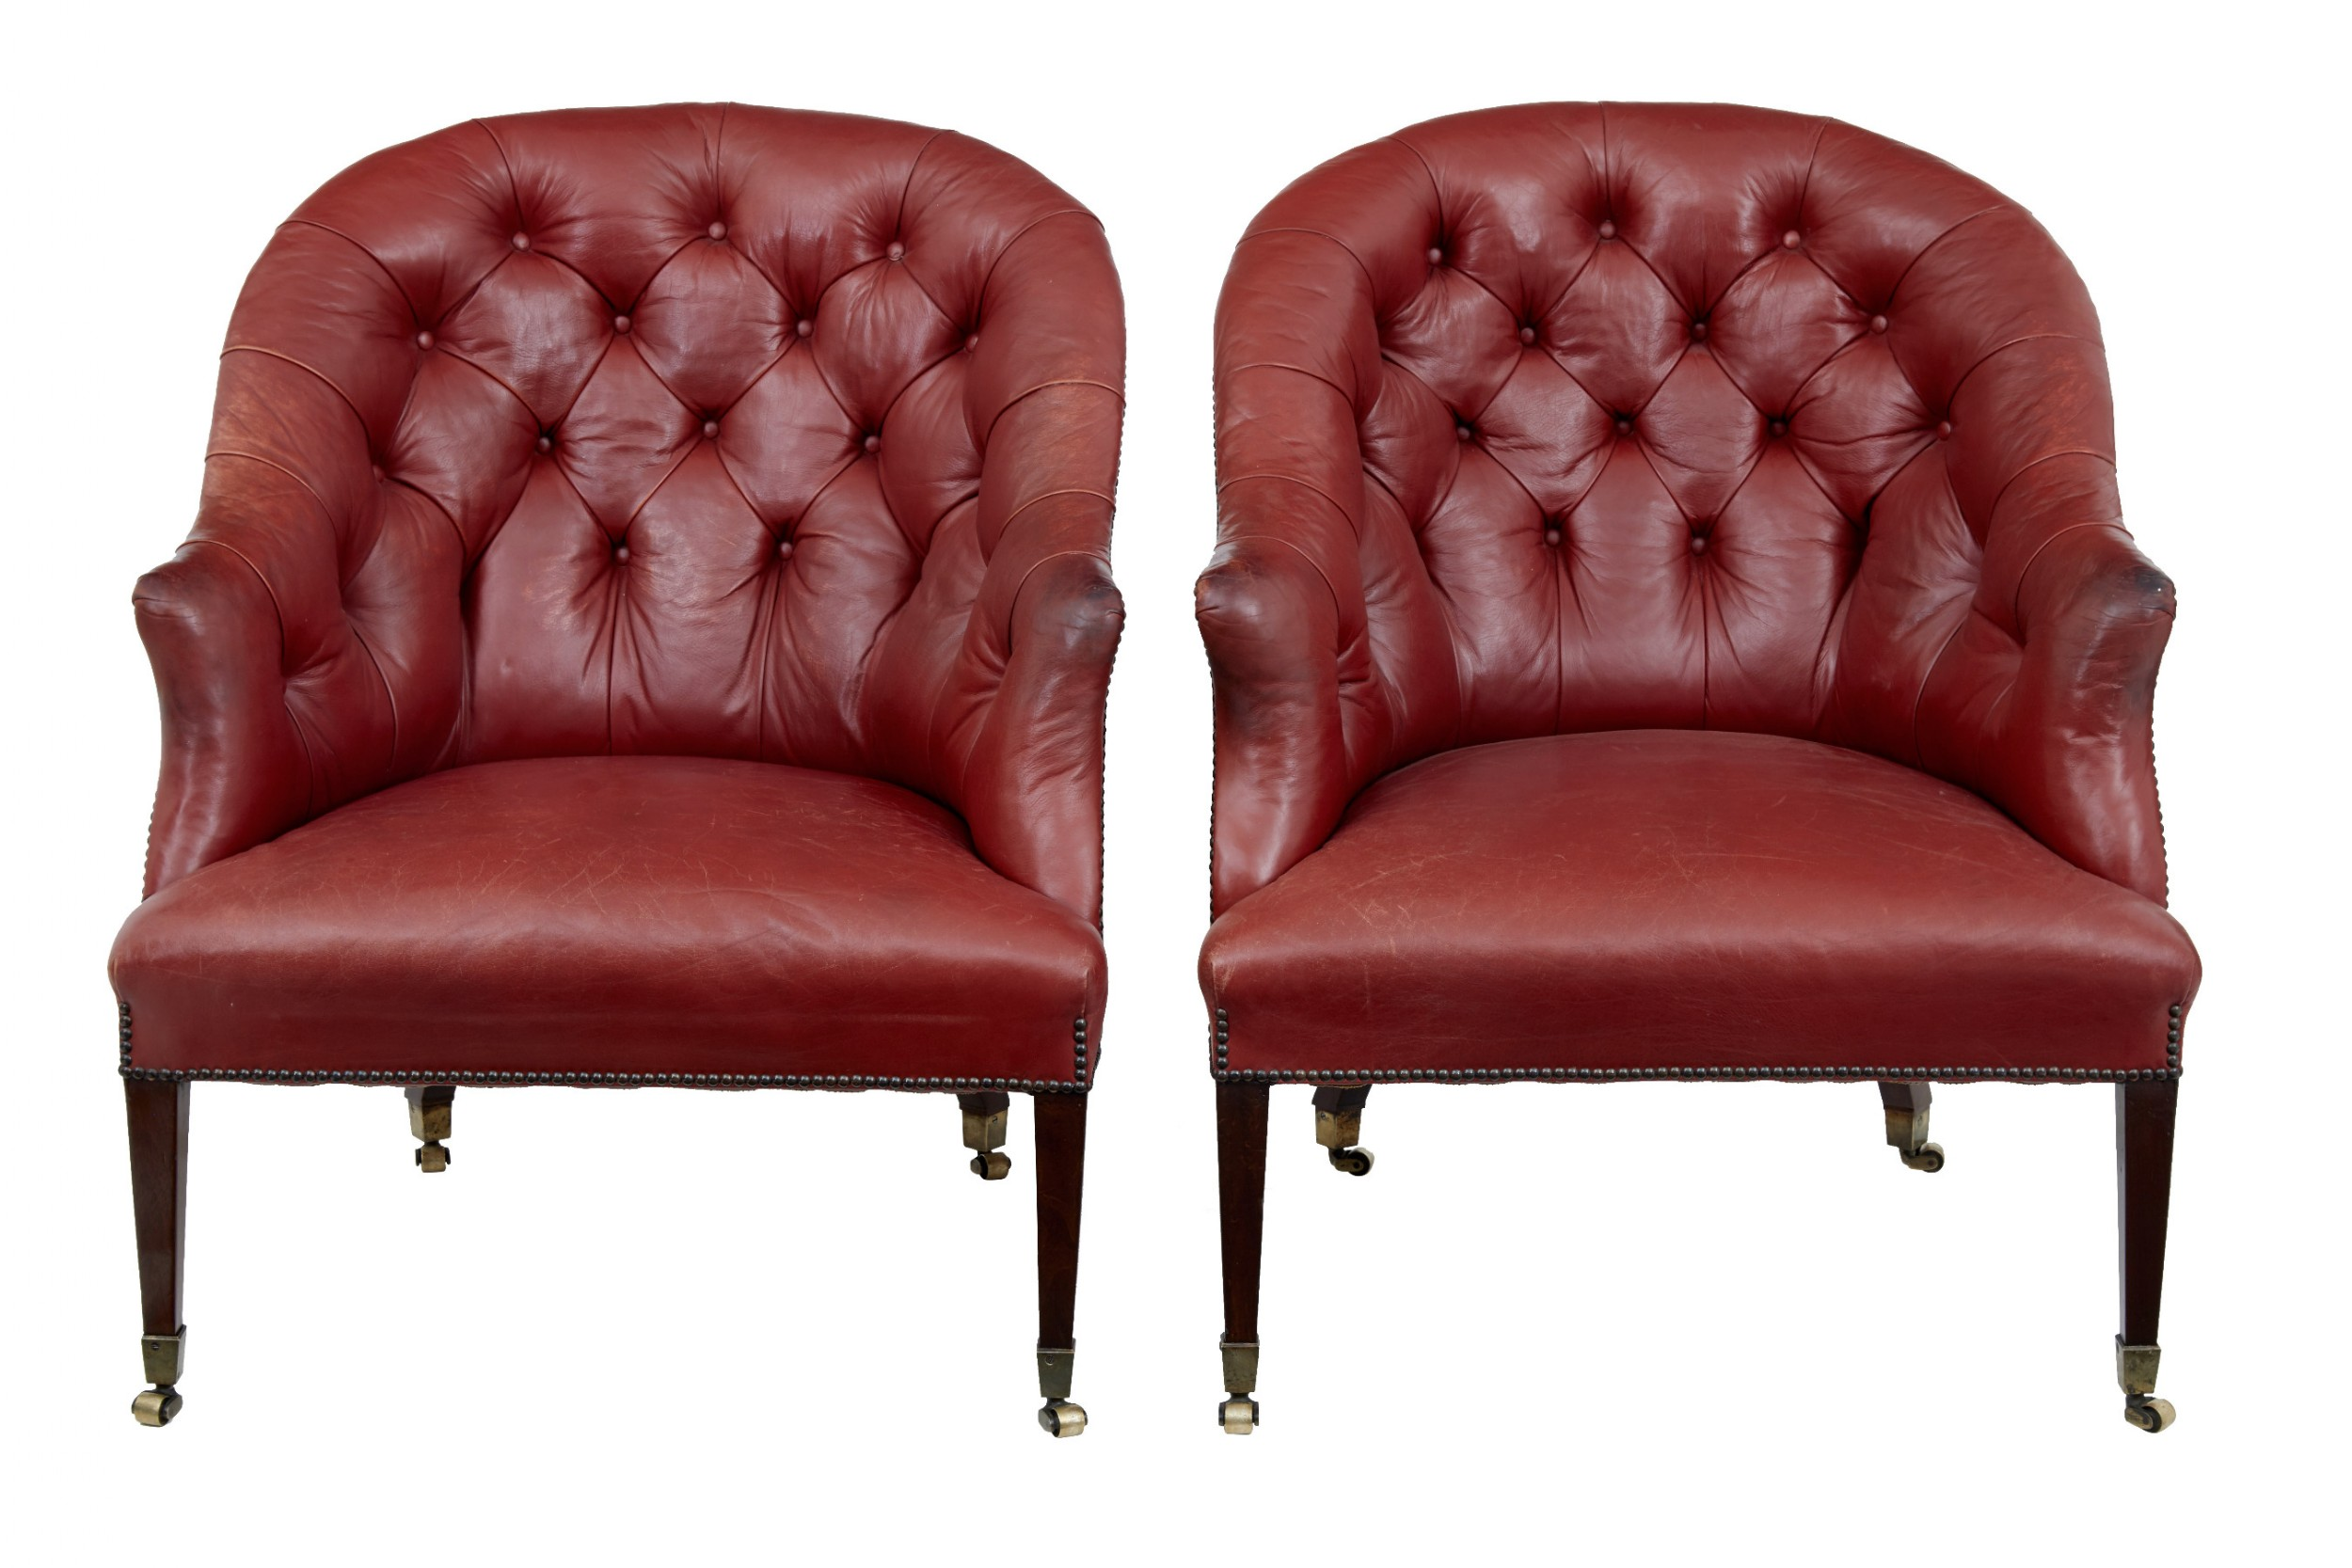 fine quality pair of late 19th century leather lounge chairs